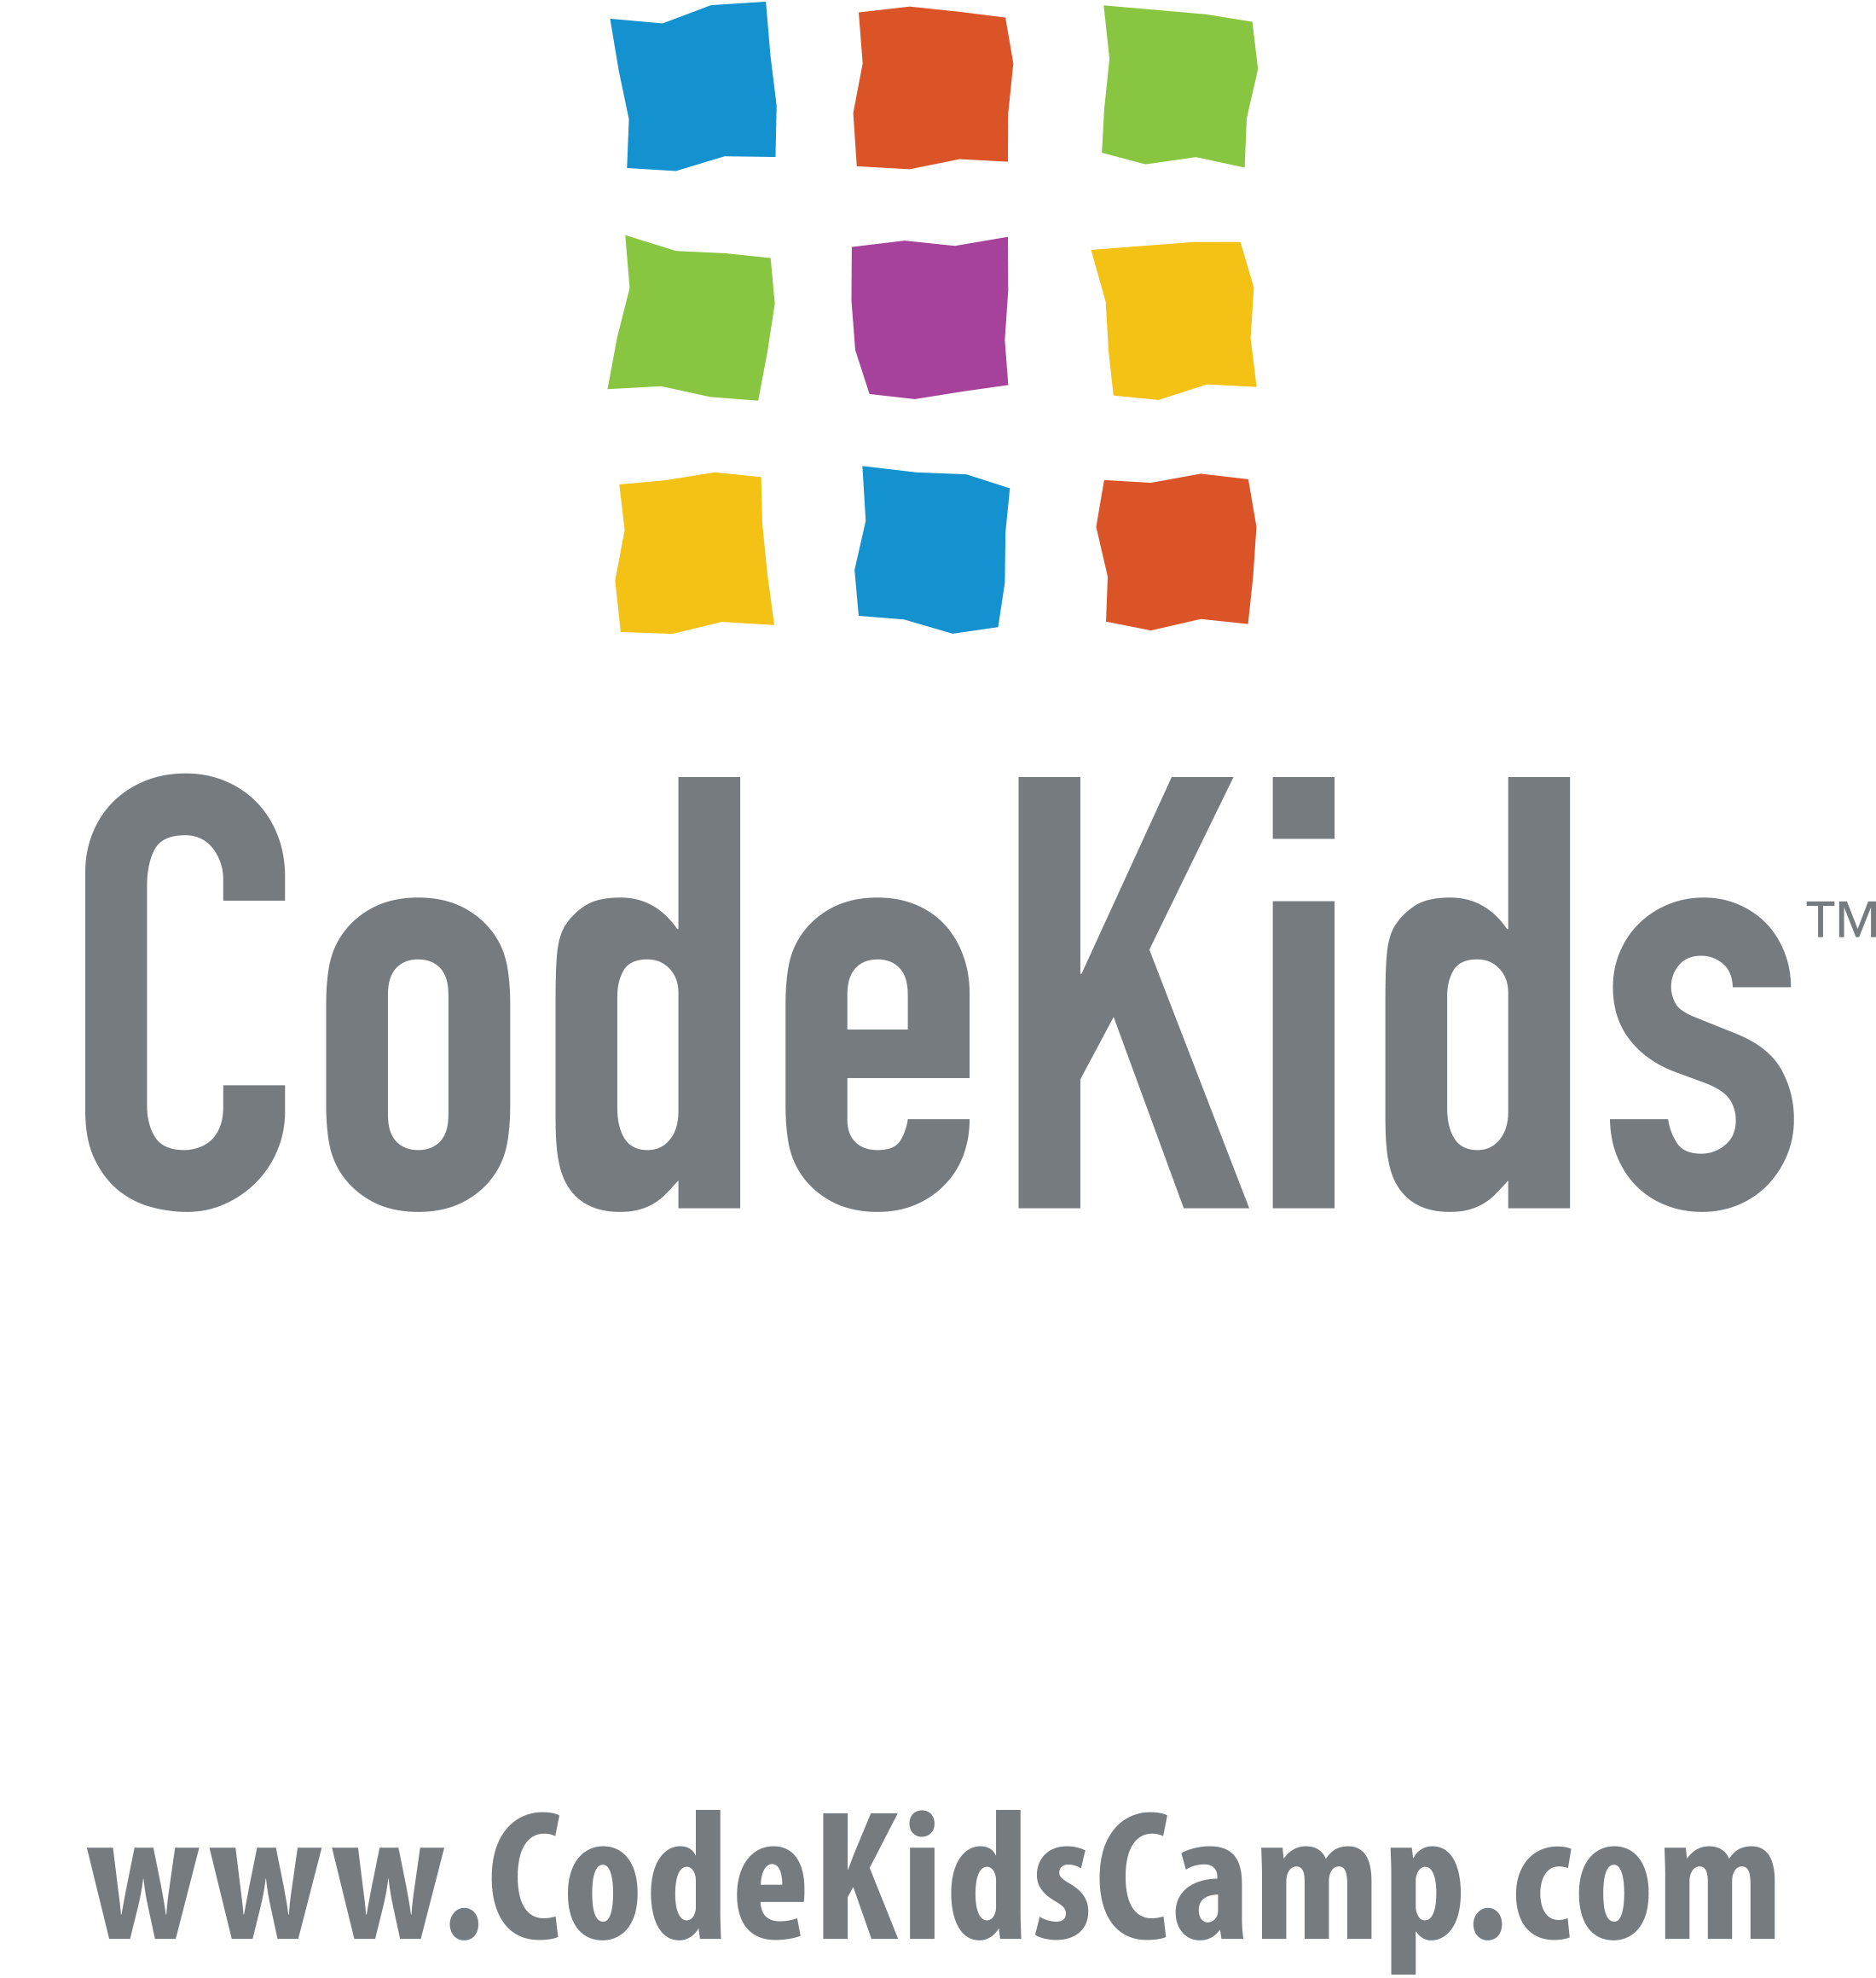 CodeKids Camp in Miami is Launched